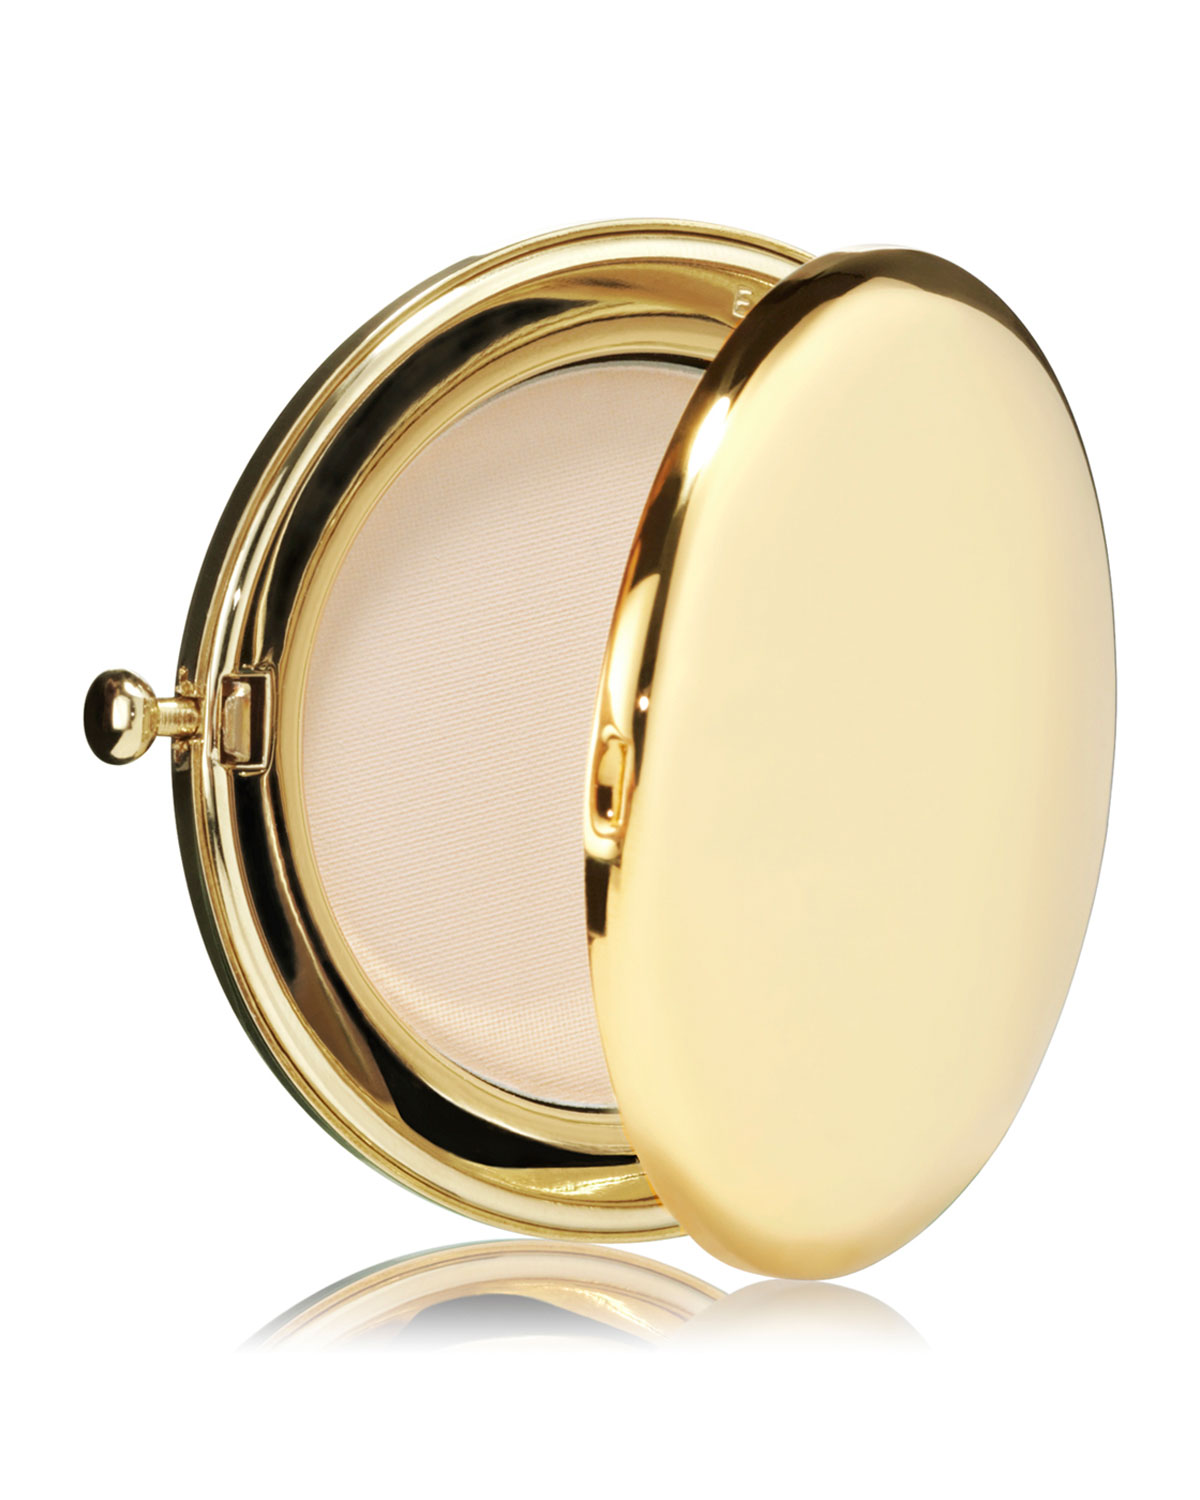 After Hours Lucidity Translucent Pressed Powder Compact - Estee Lauder